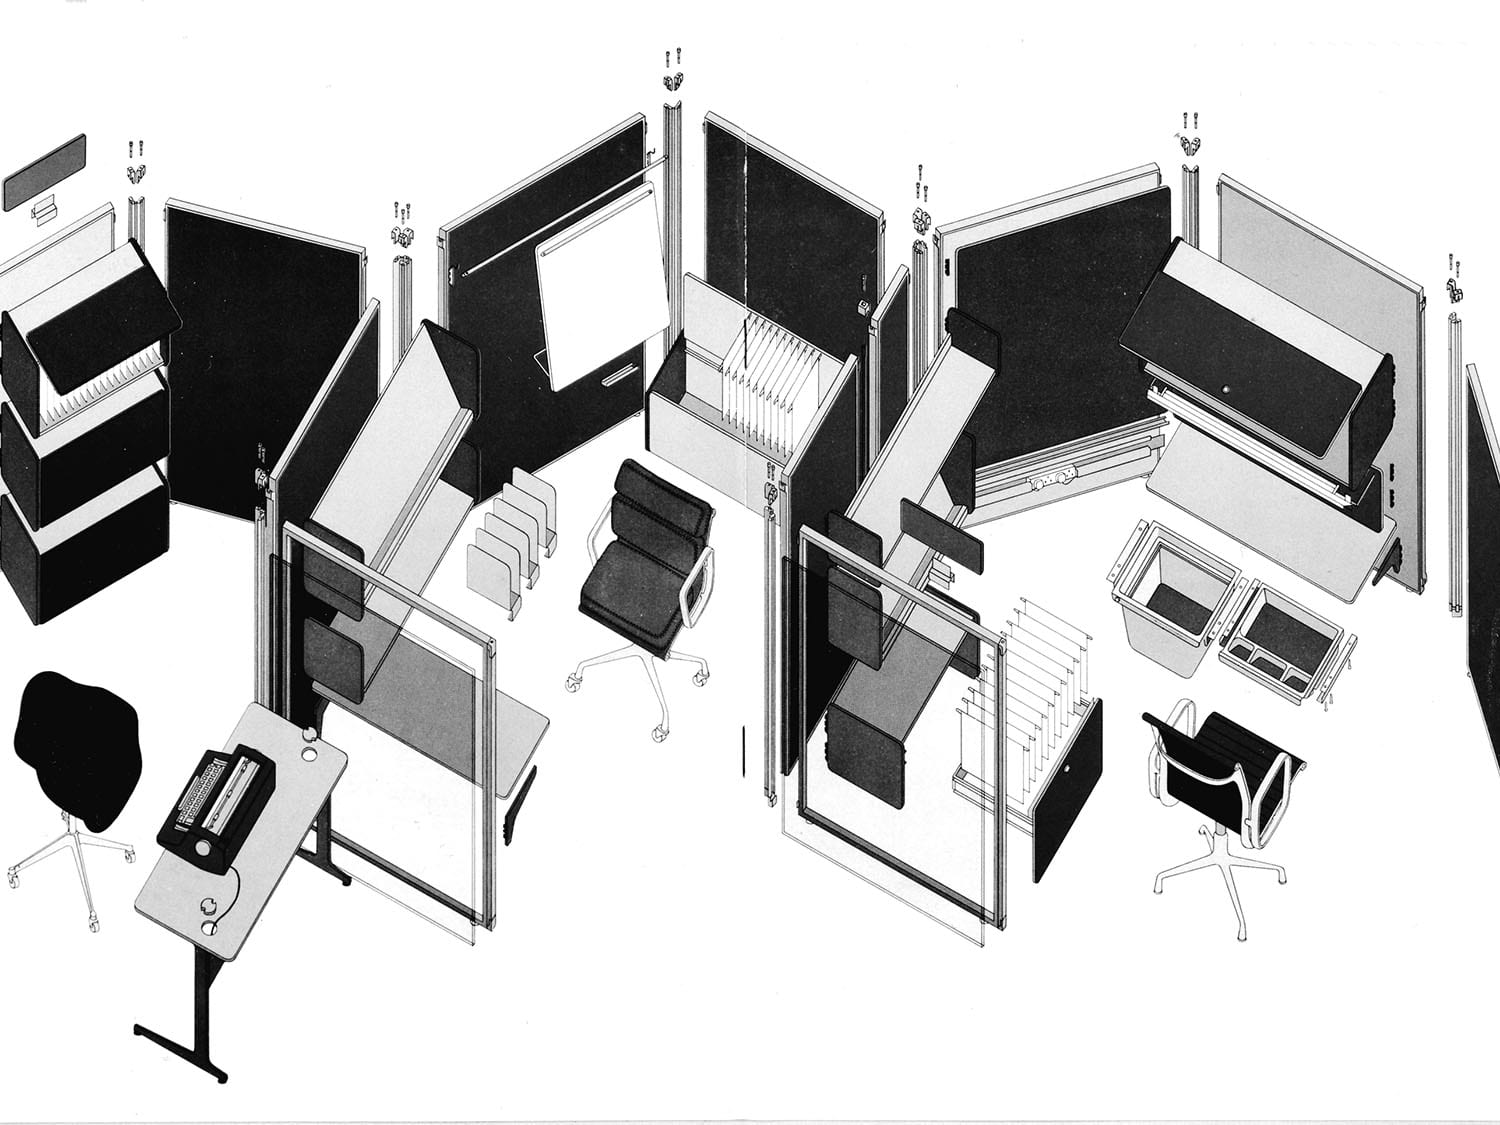 Diagram Of Desk Cubicle Enthusiast Wiring Diagrams Why Cubicles Are A Bad Idea 240 Volt